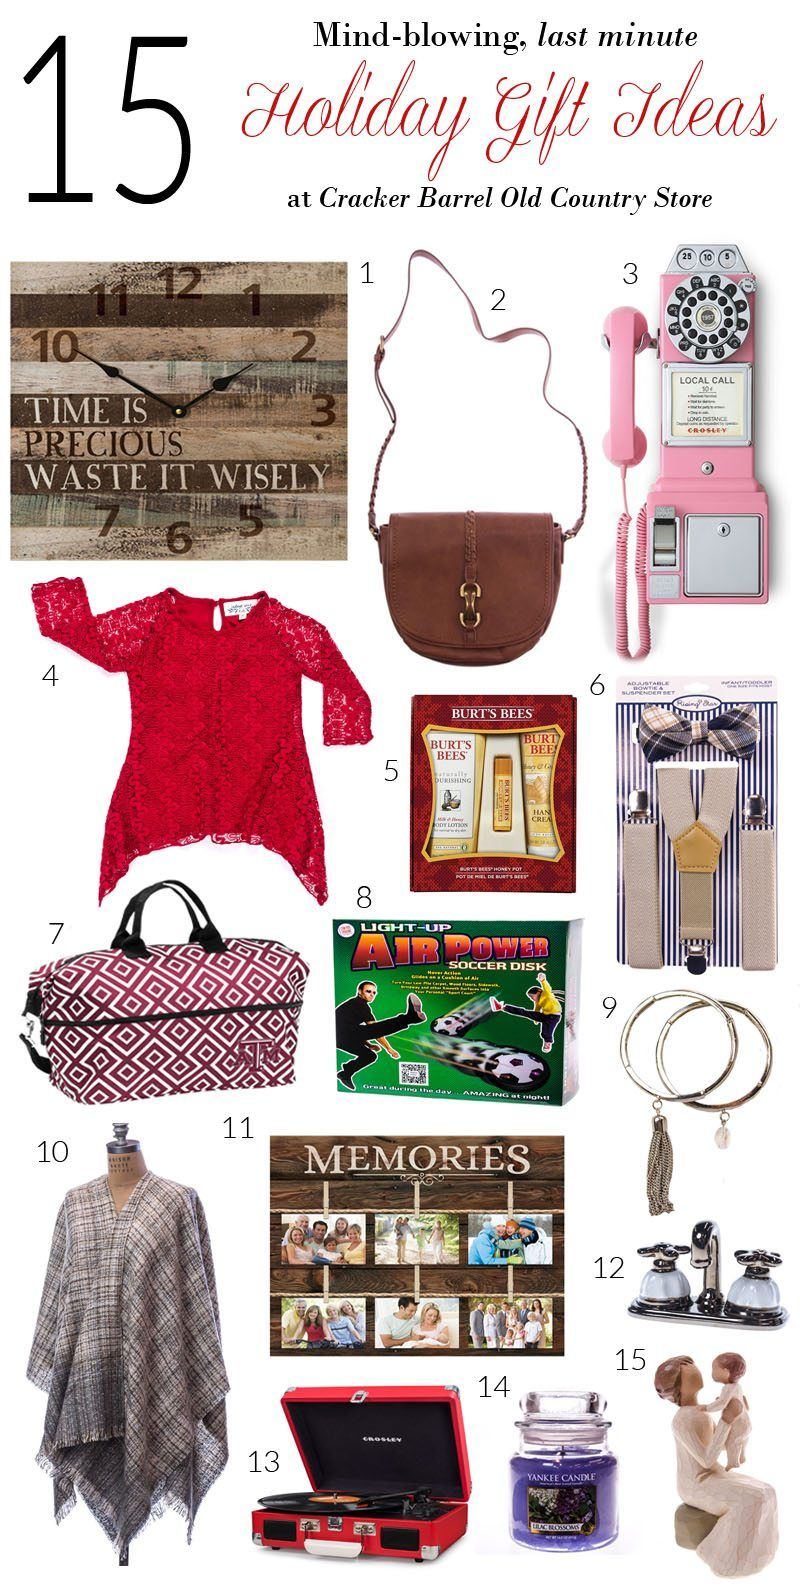 15 Last Minute Holiday Gift Ideas at the Cracker Barrel ...